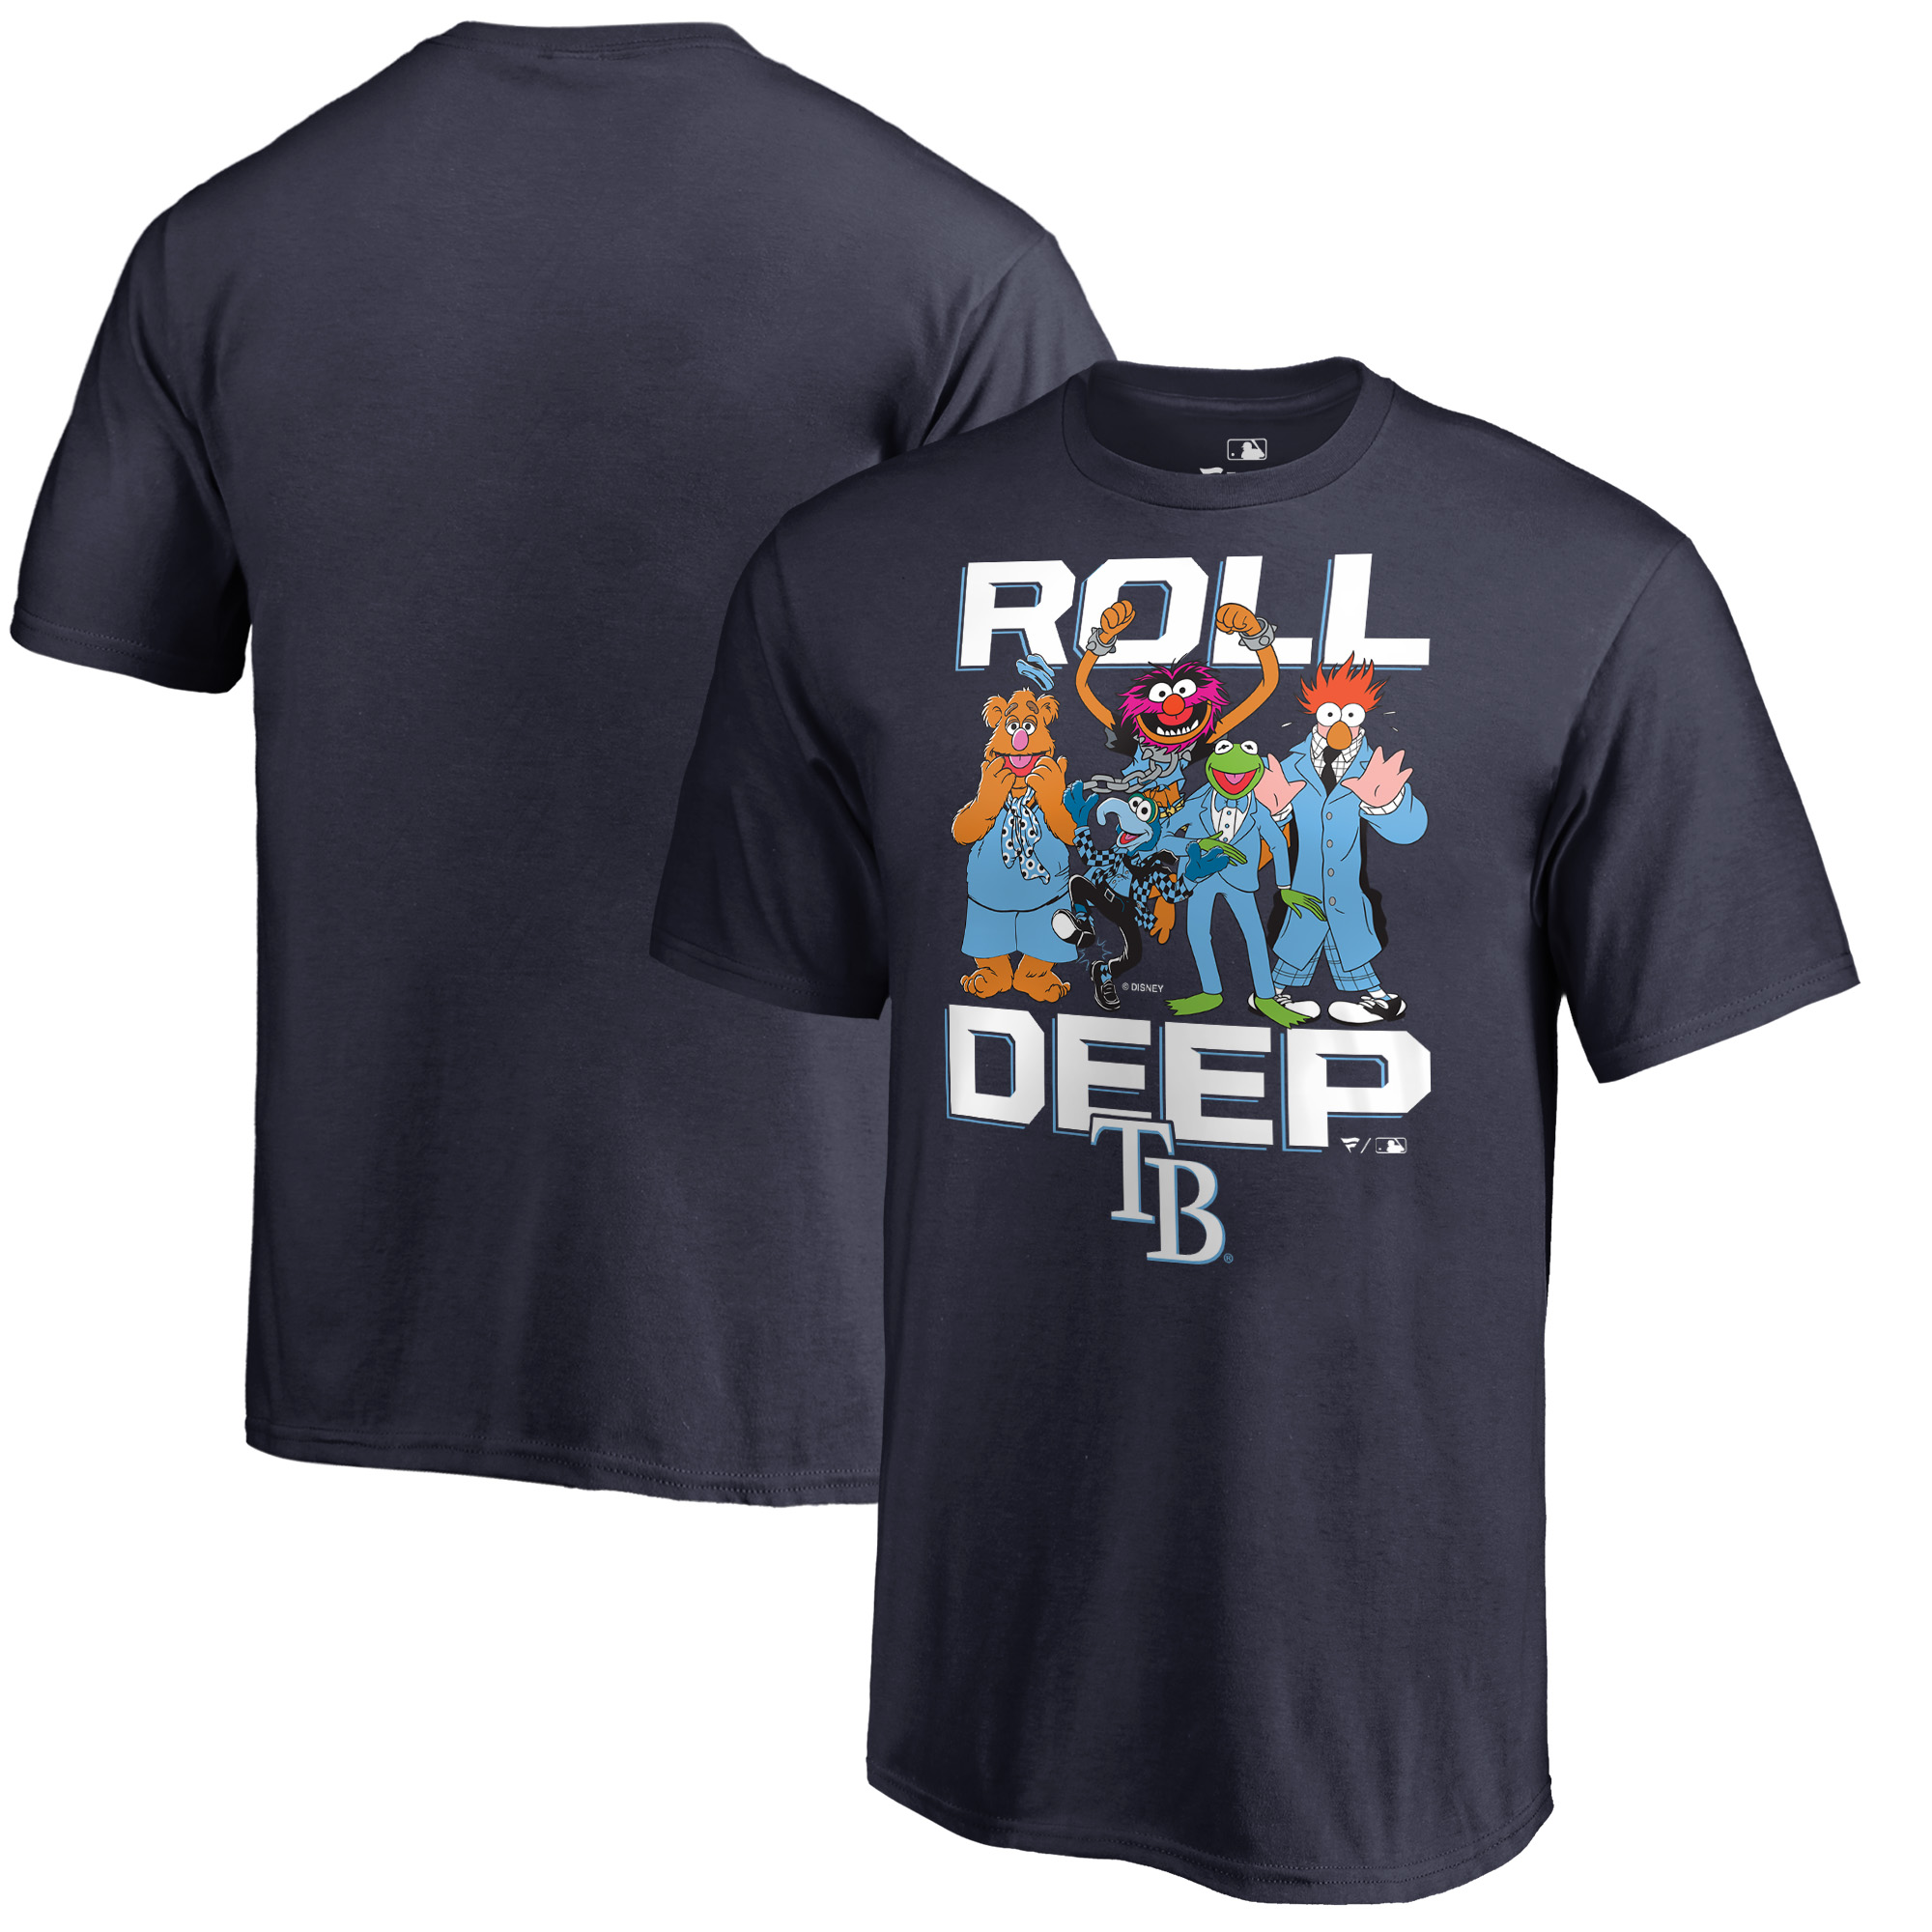 Tampa Bay Rays Fanatics Branded Youth Muppets Roll Deep T-Shirt - Navy